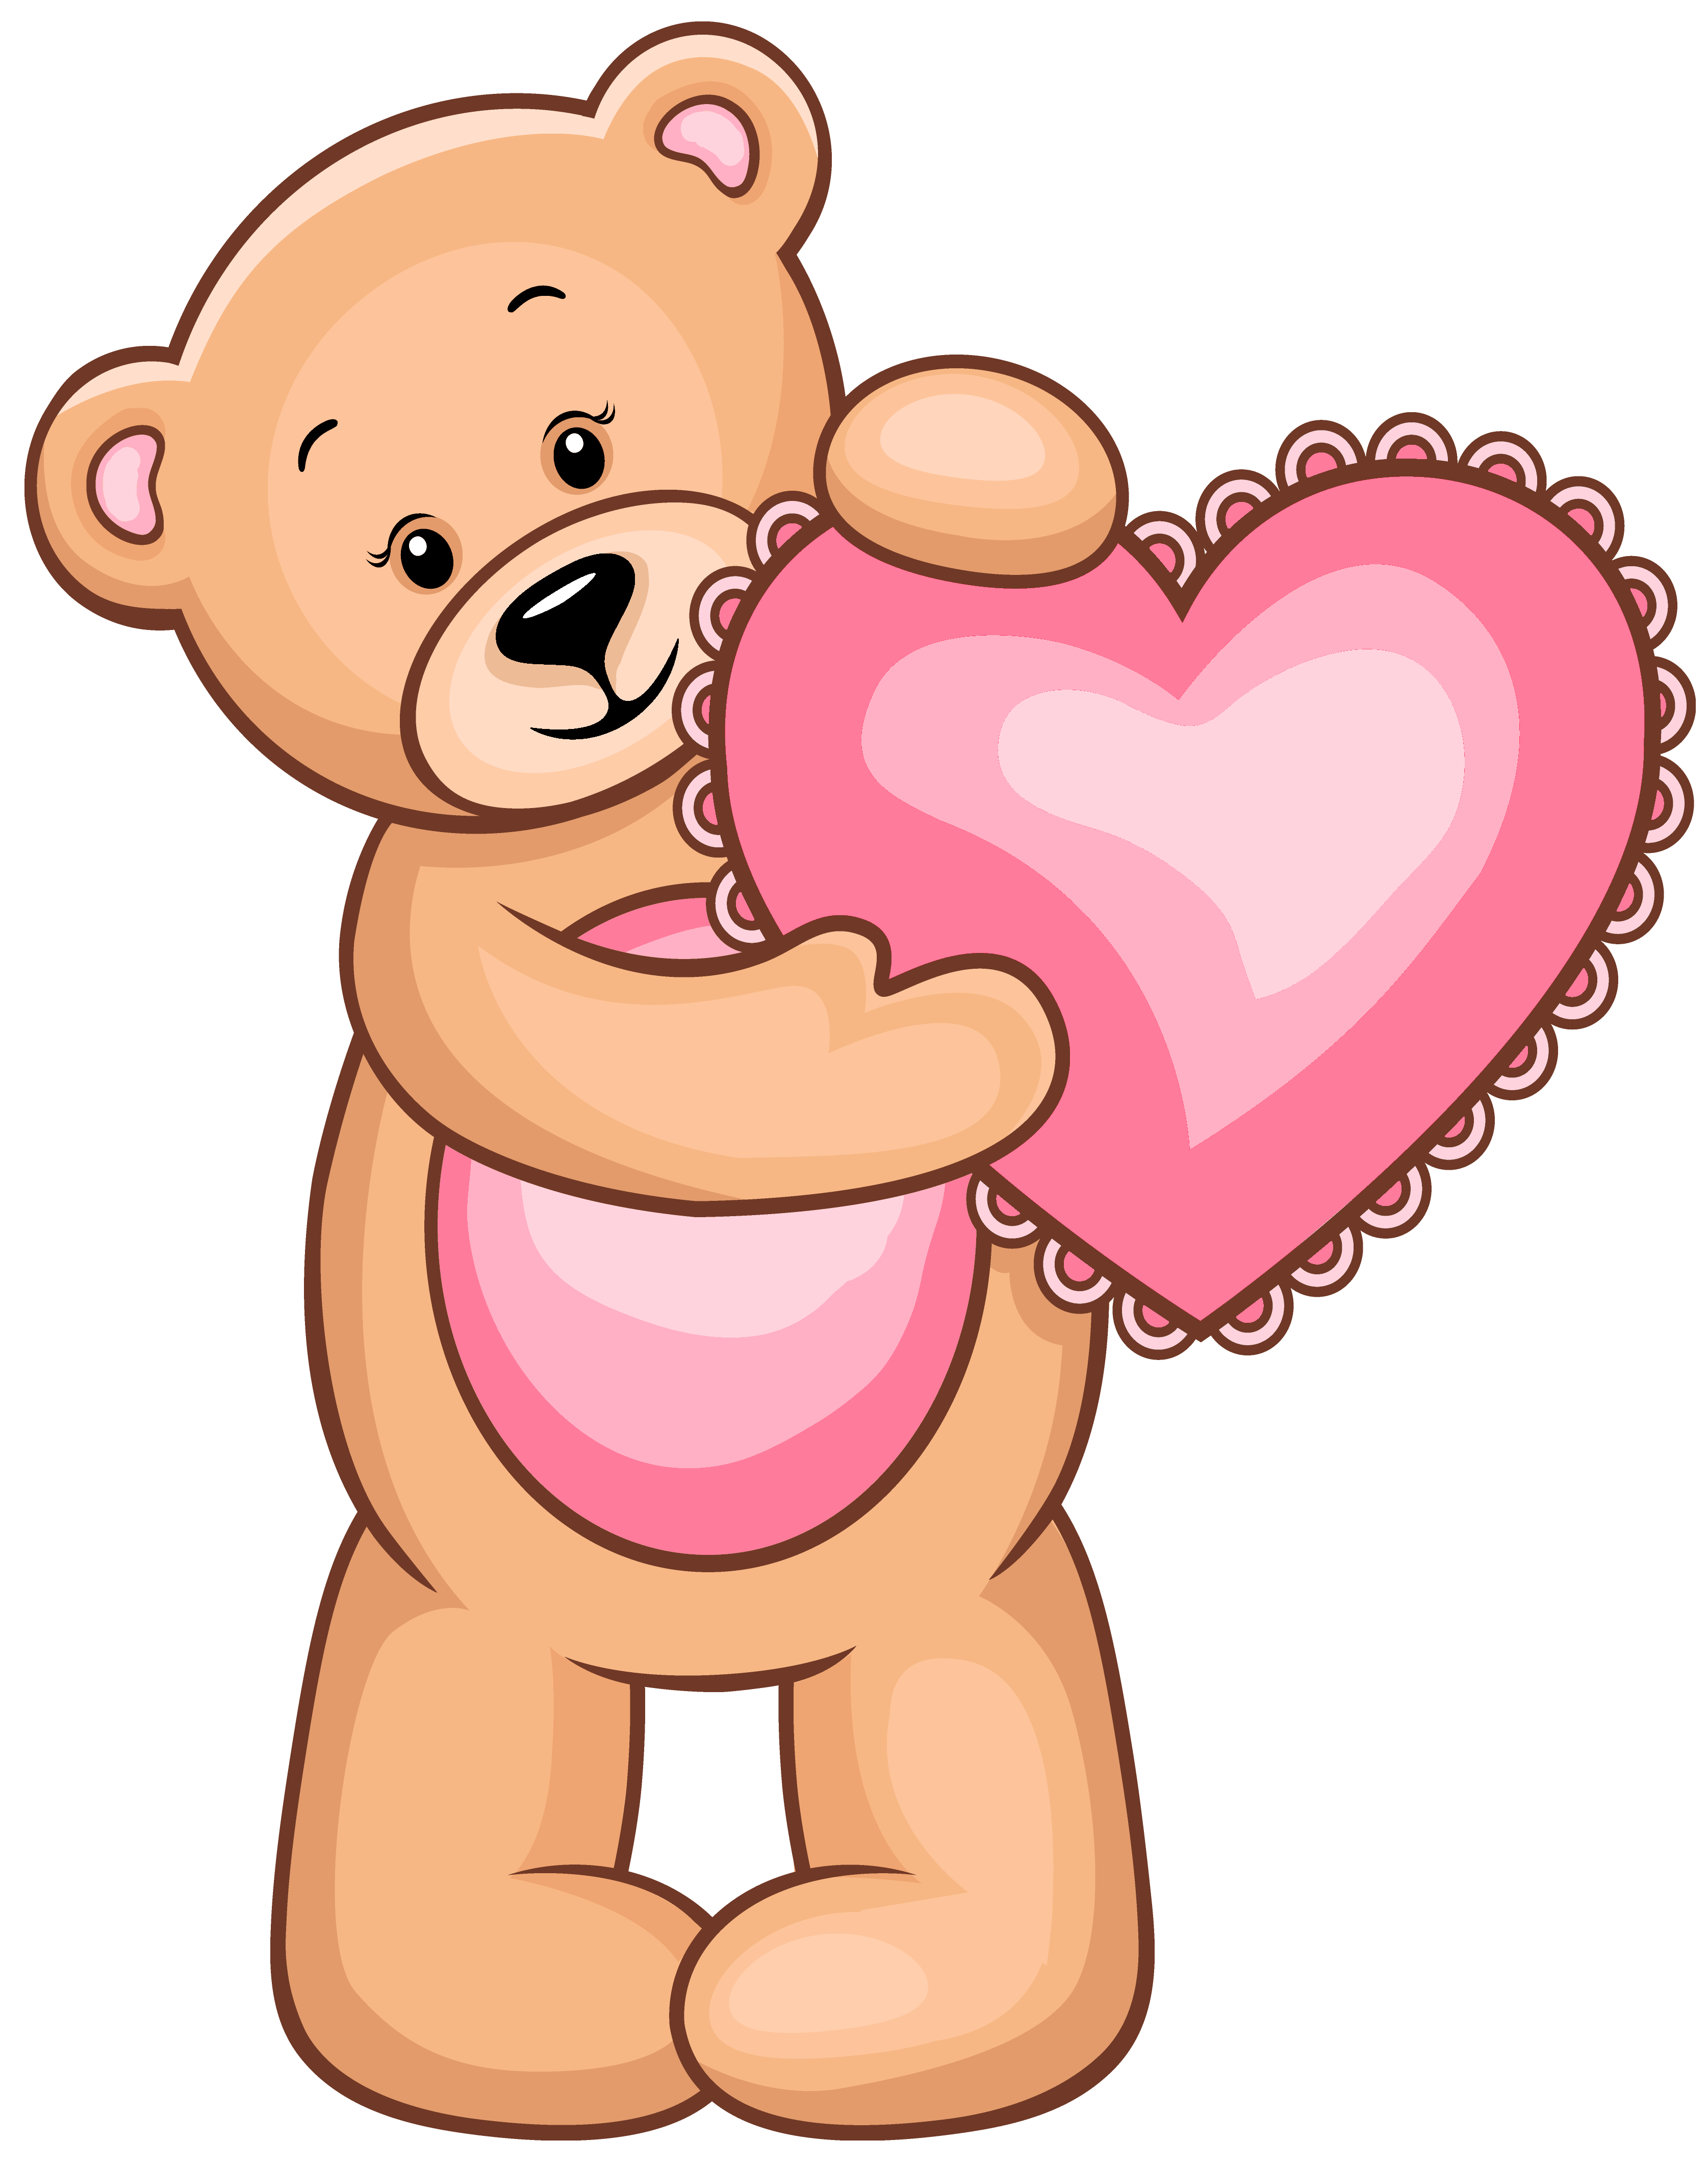 Clipart teddy bear with heart png transparent download Transparent Teddy Bear with Pink Heart PNG Clipart | Gallery ... png transparent download